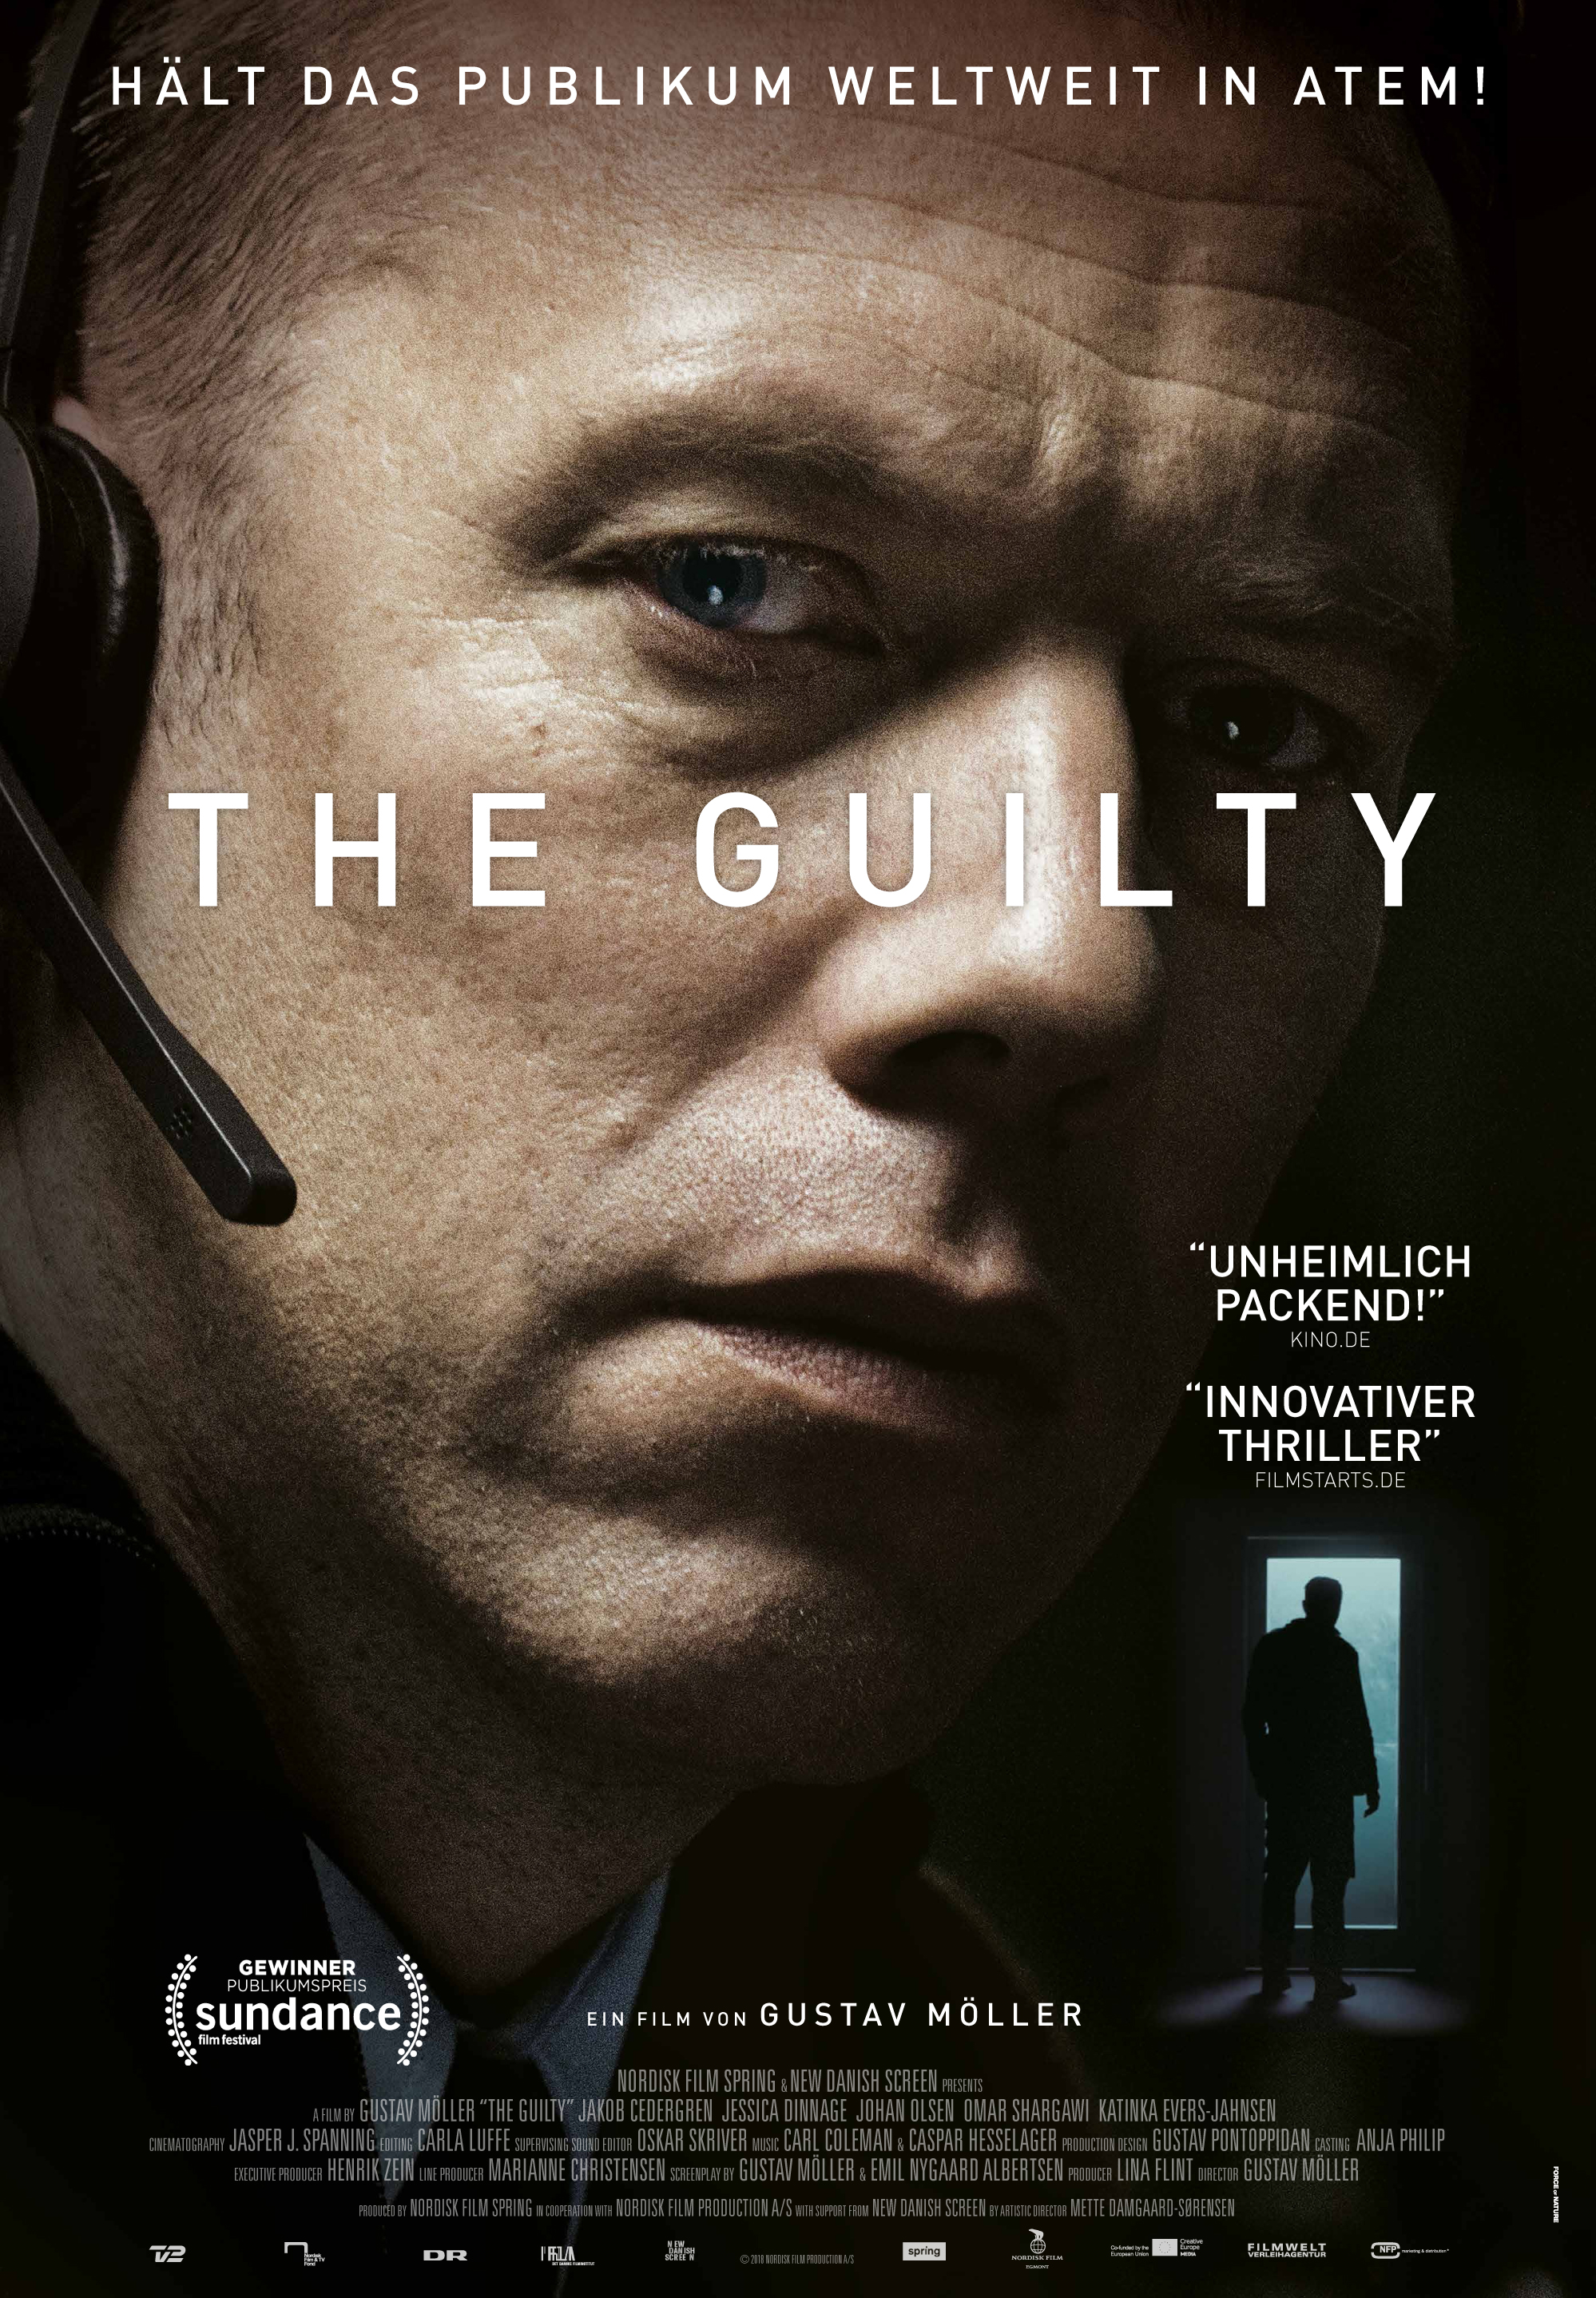 The Guilty | Wessels-Filmkritik.com